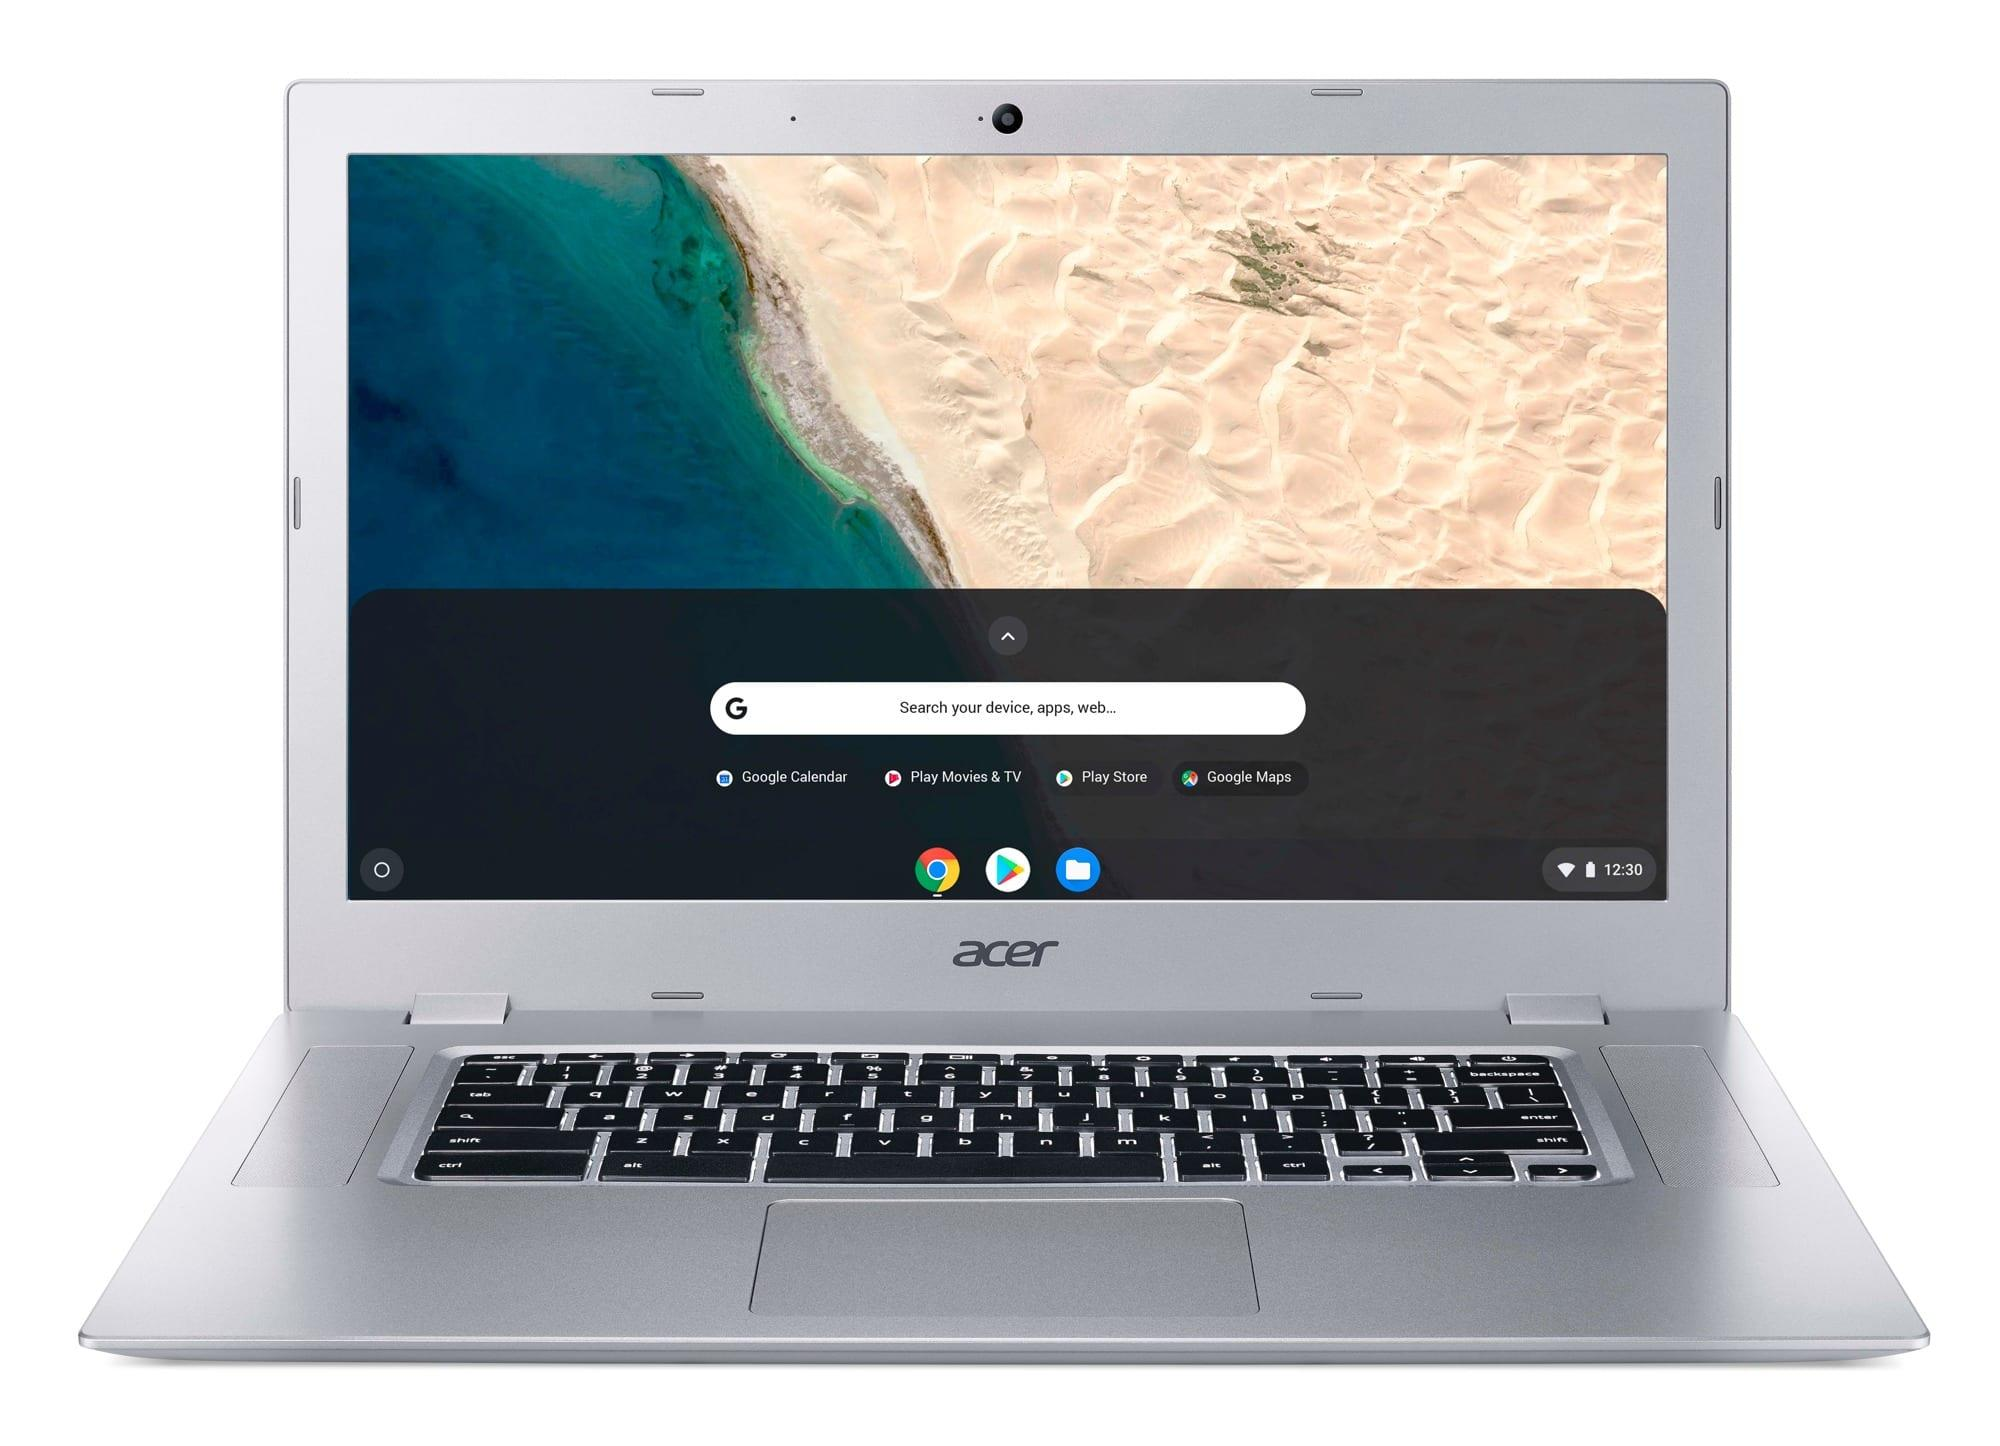 Acer S Chromebook 315 Is Its First With Amd Processors Engadget